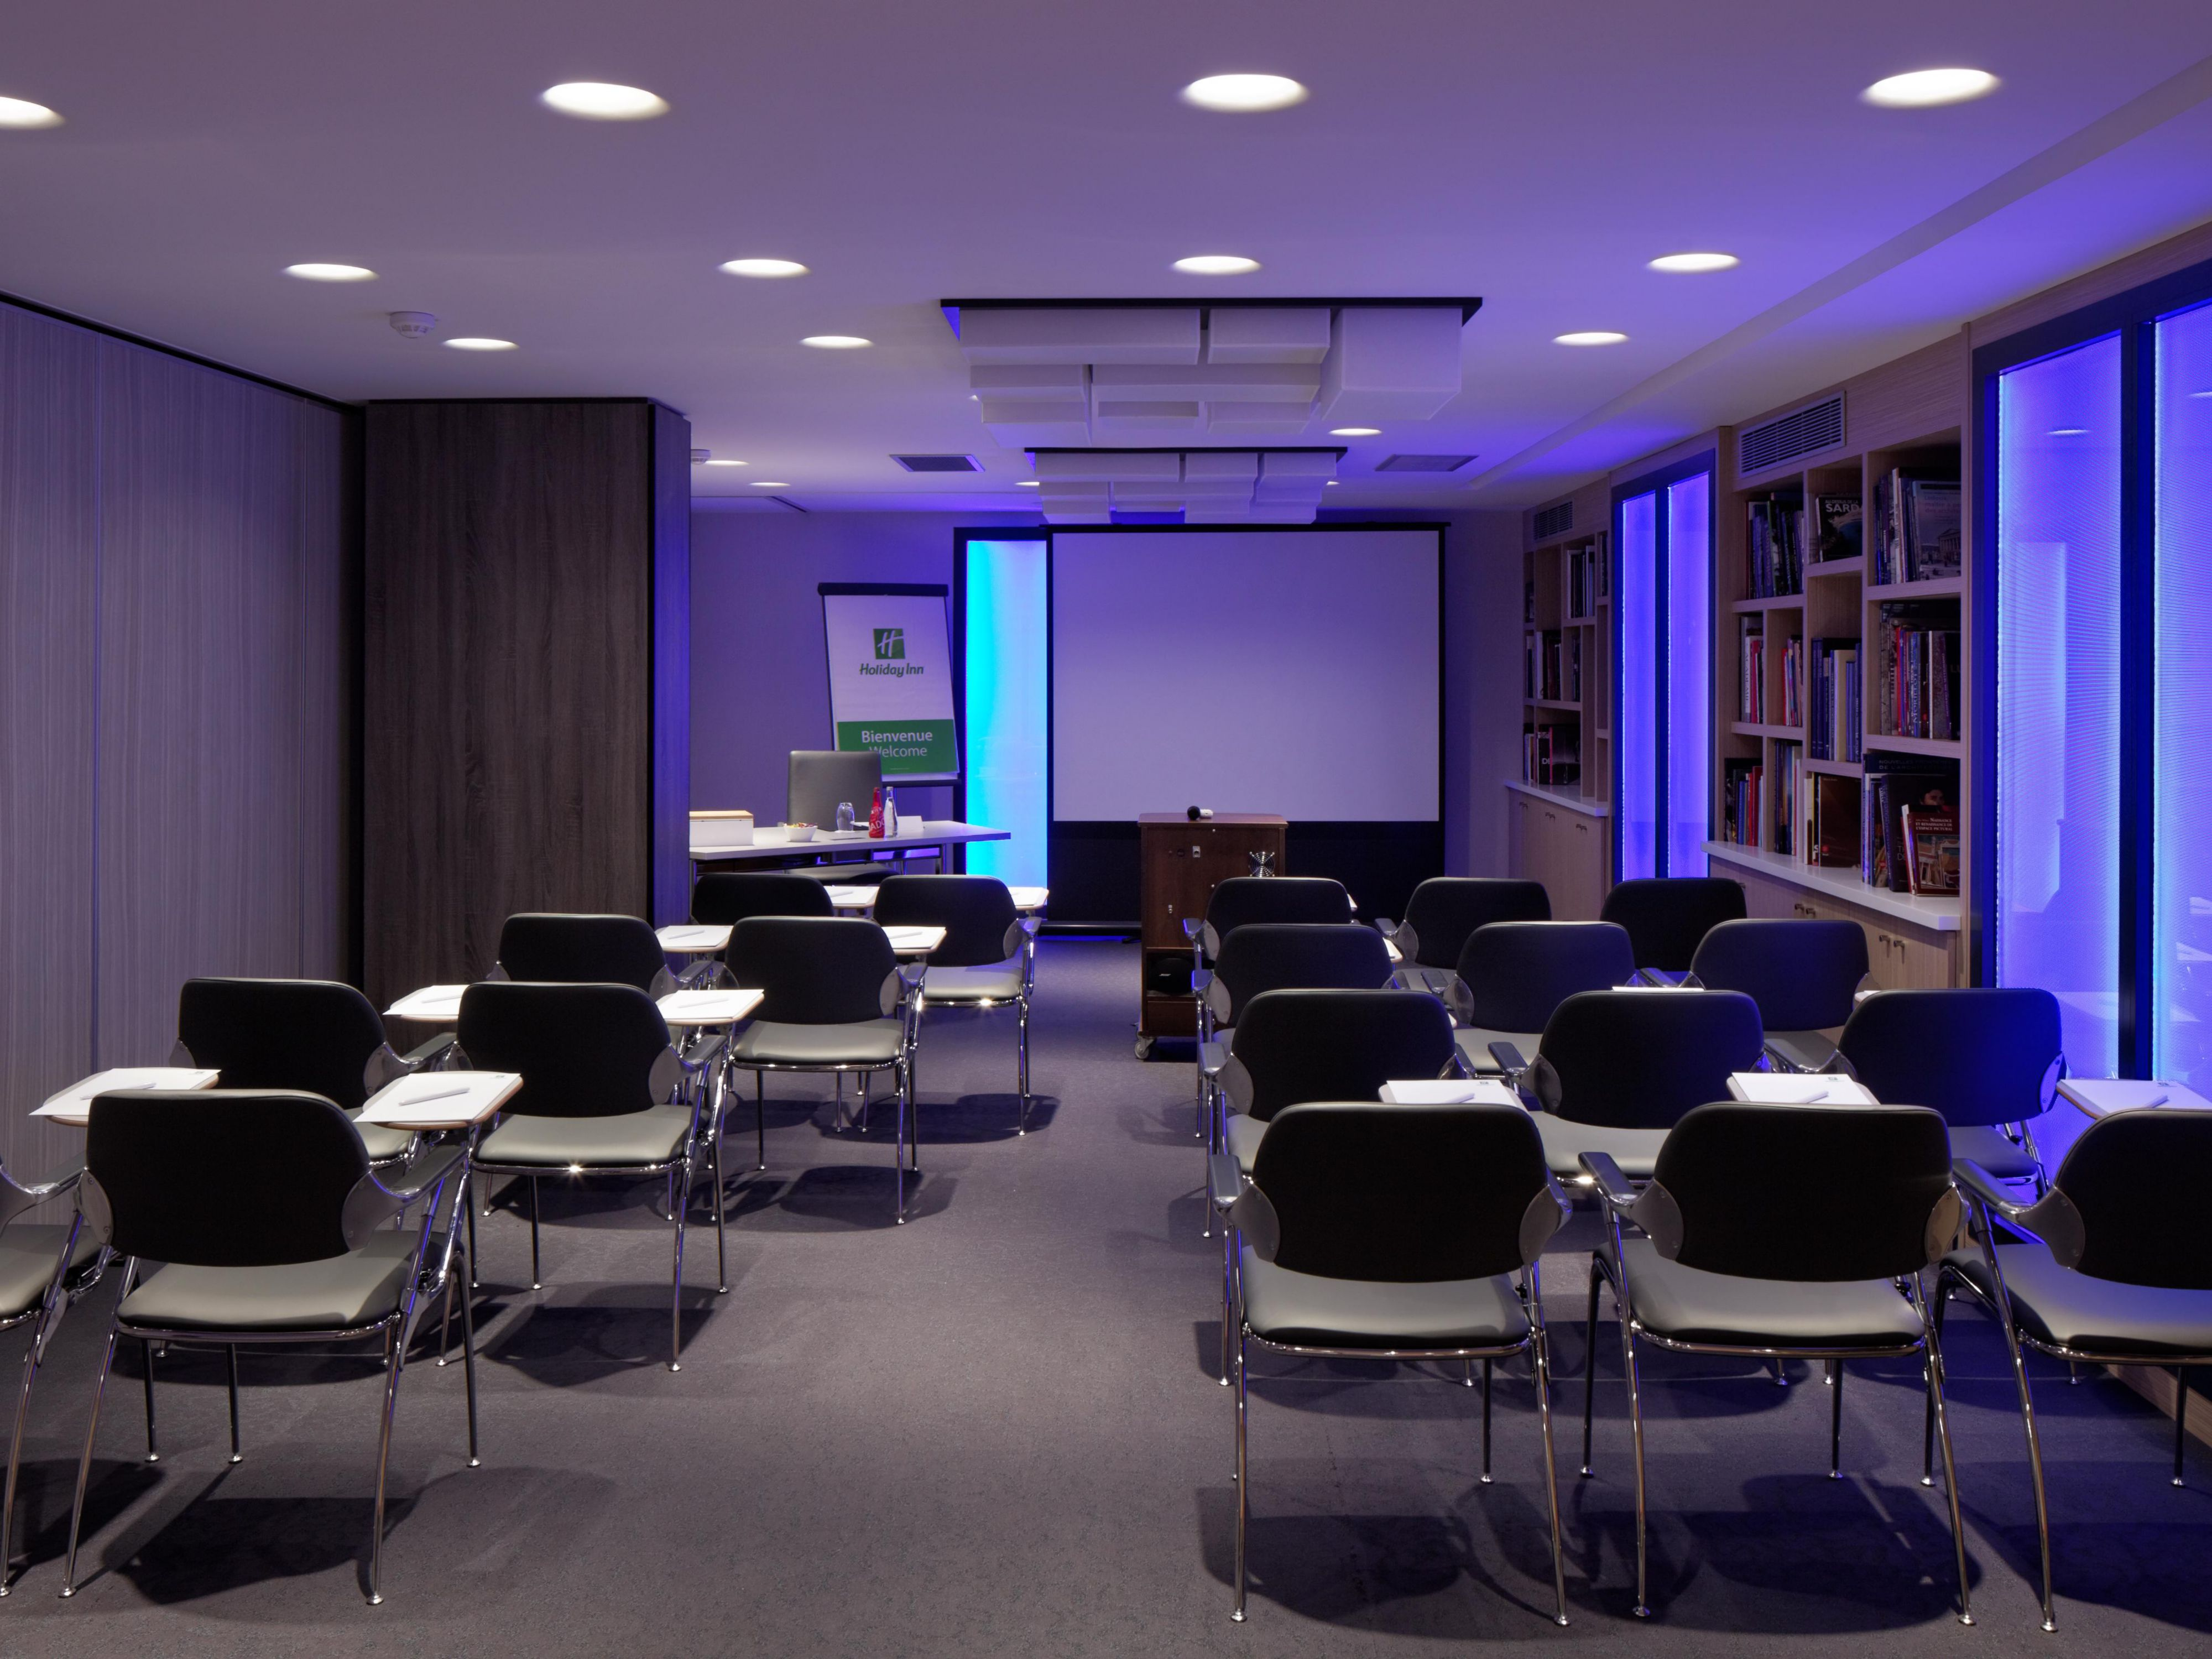 Montaigne Meeting Room in Theatre set  w/Living Colors Lighting